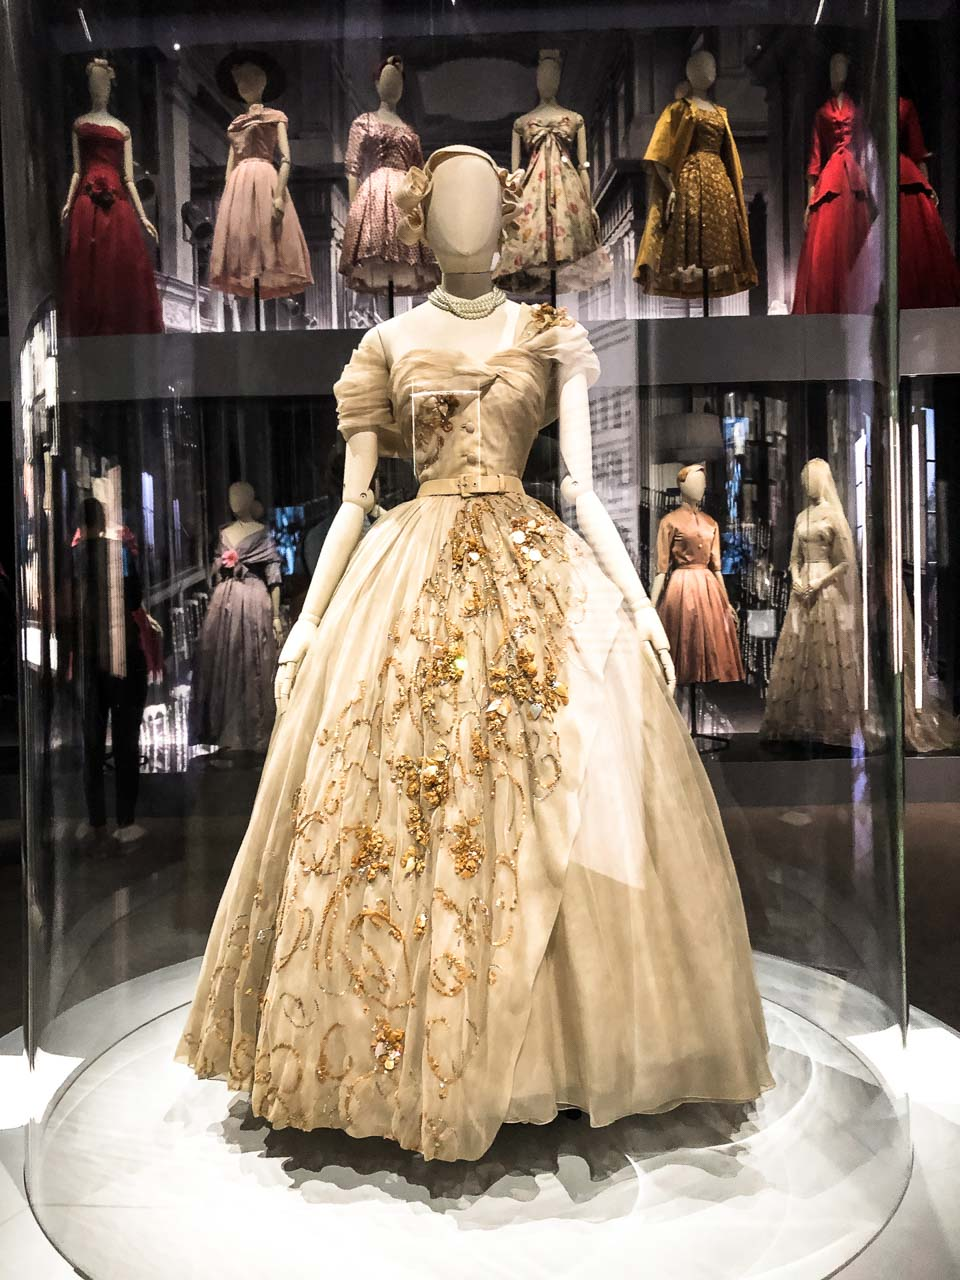 An off-white gown designed and gifted by Christian Dior to Princess Margaret for her 21st birthday